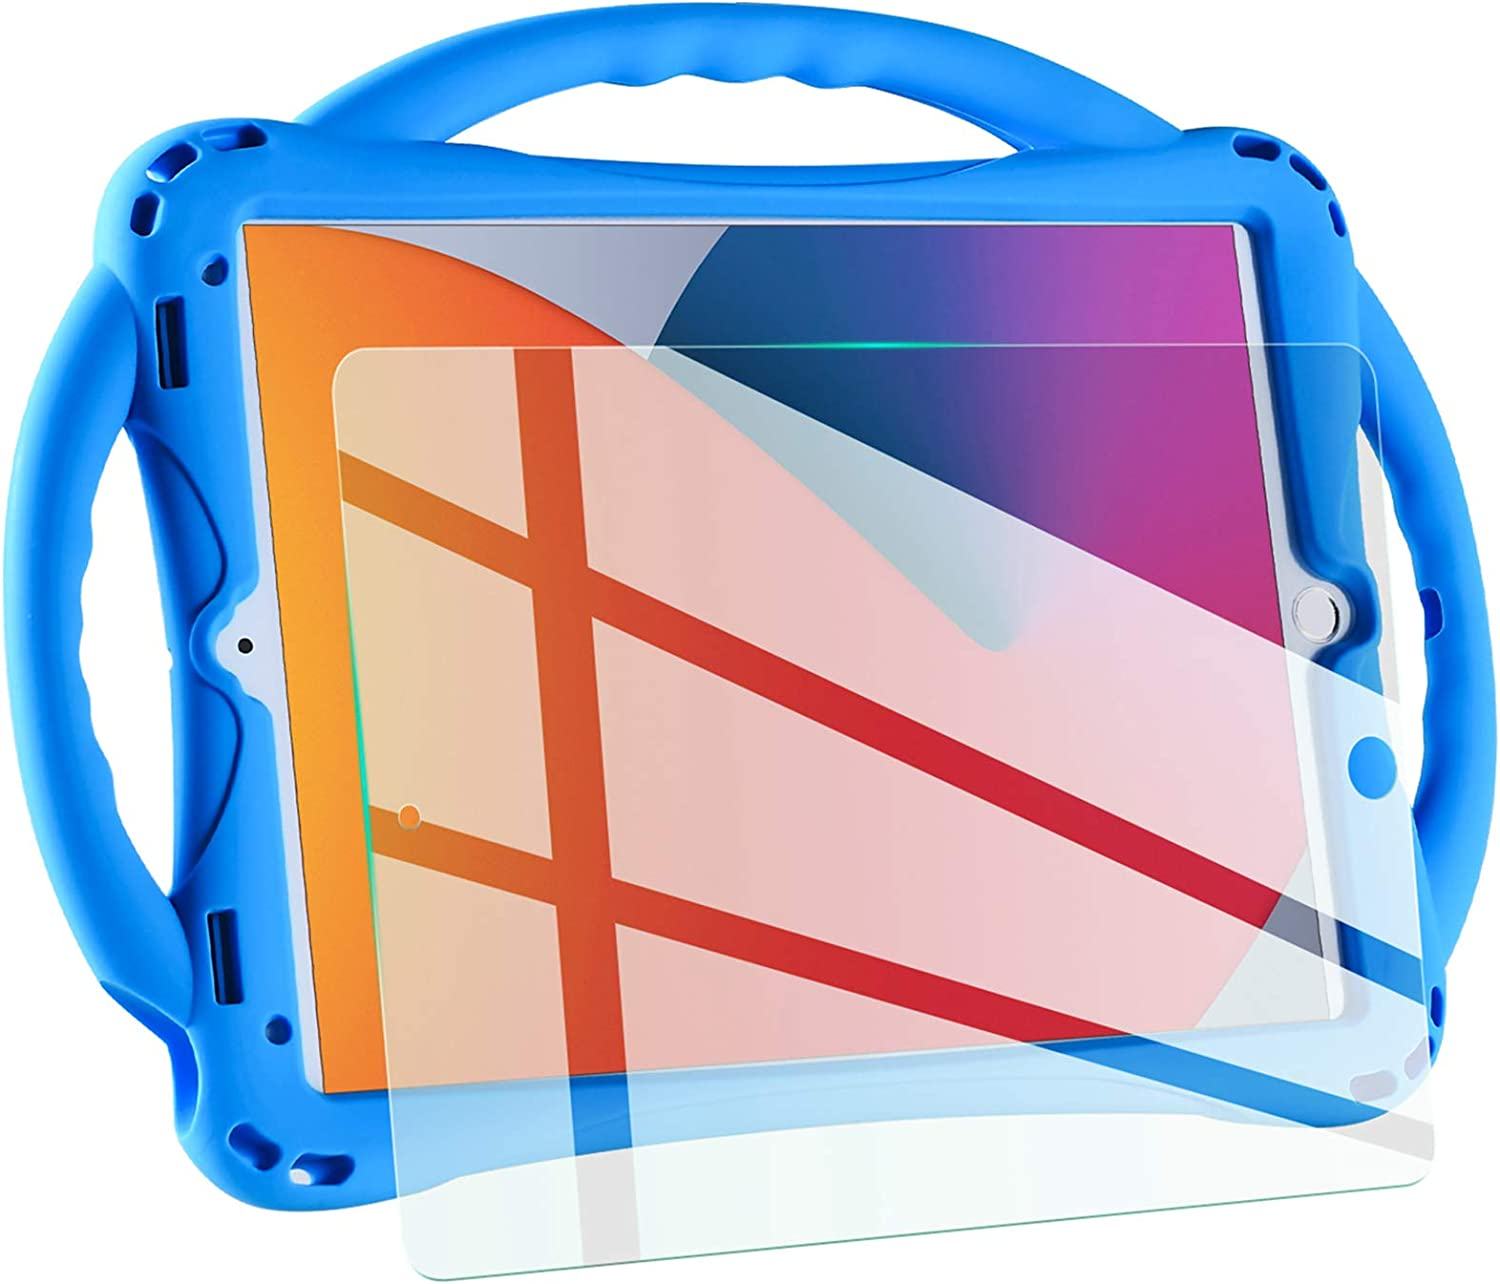 TopEsct kids case for new ipad 10.2 inch 2021 /2020/2019, iPad 9th/8th/7th Generation Case for Kids,with Tempered Glass Screen Protector and Strap,Silicone Shockproof ipad 10.2